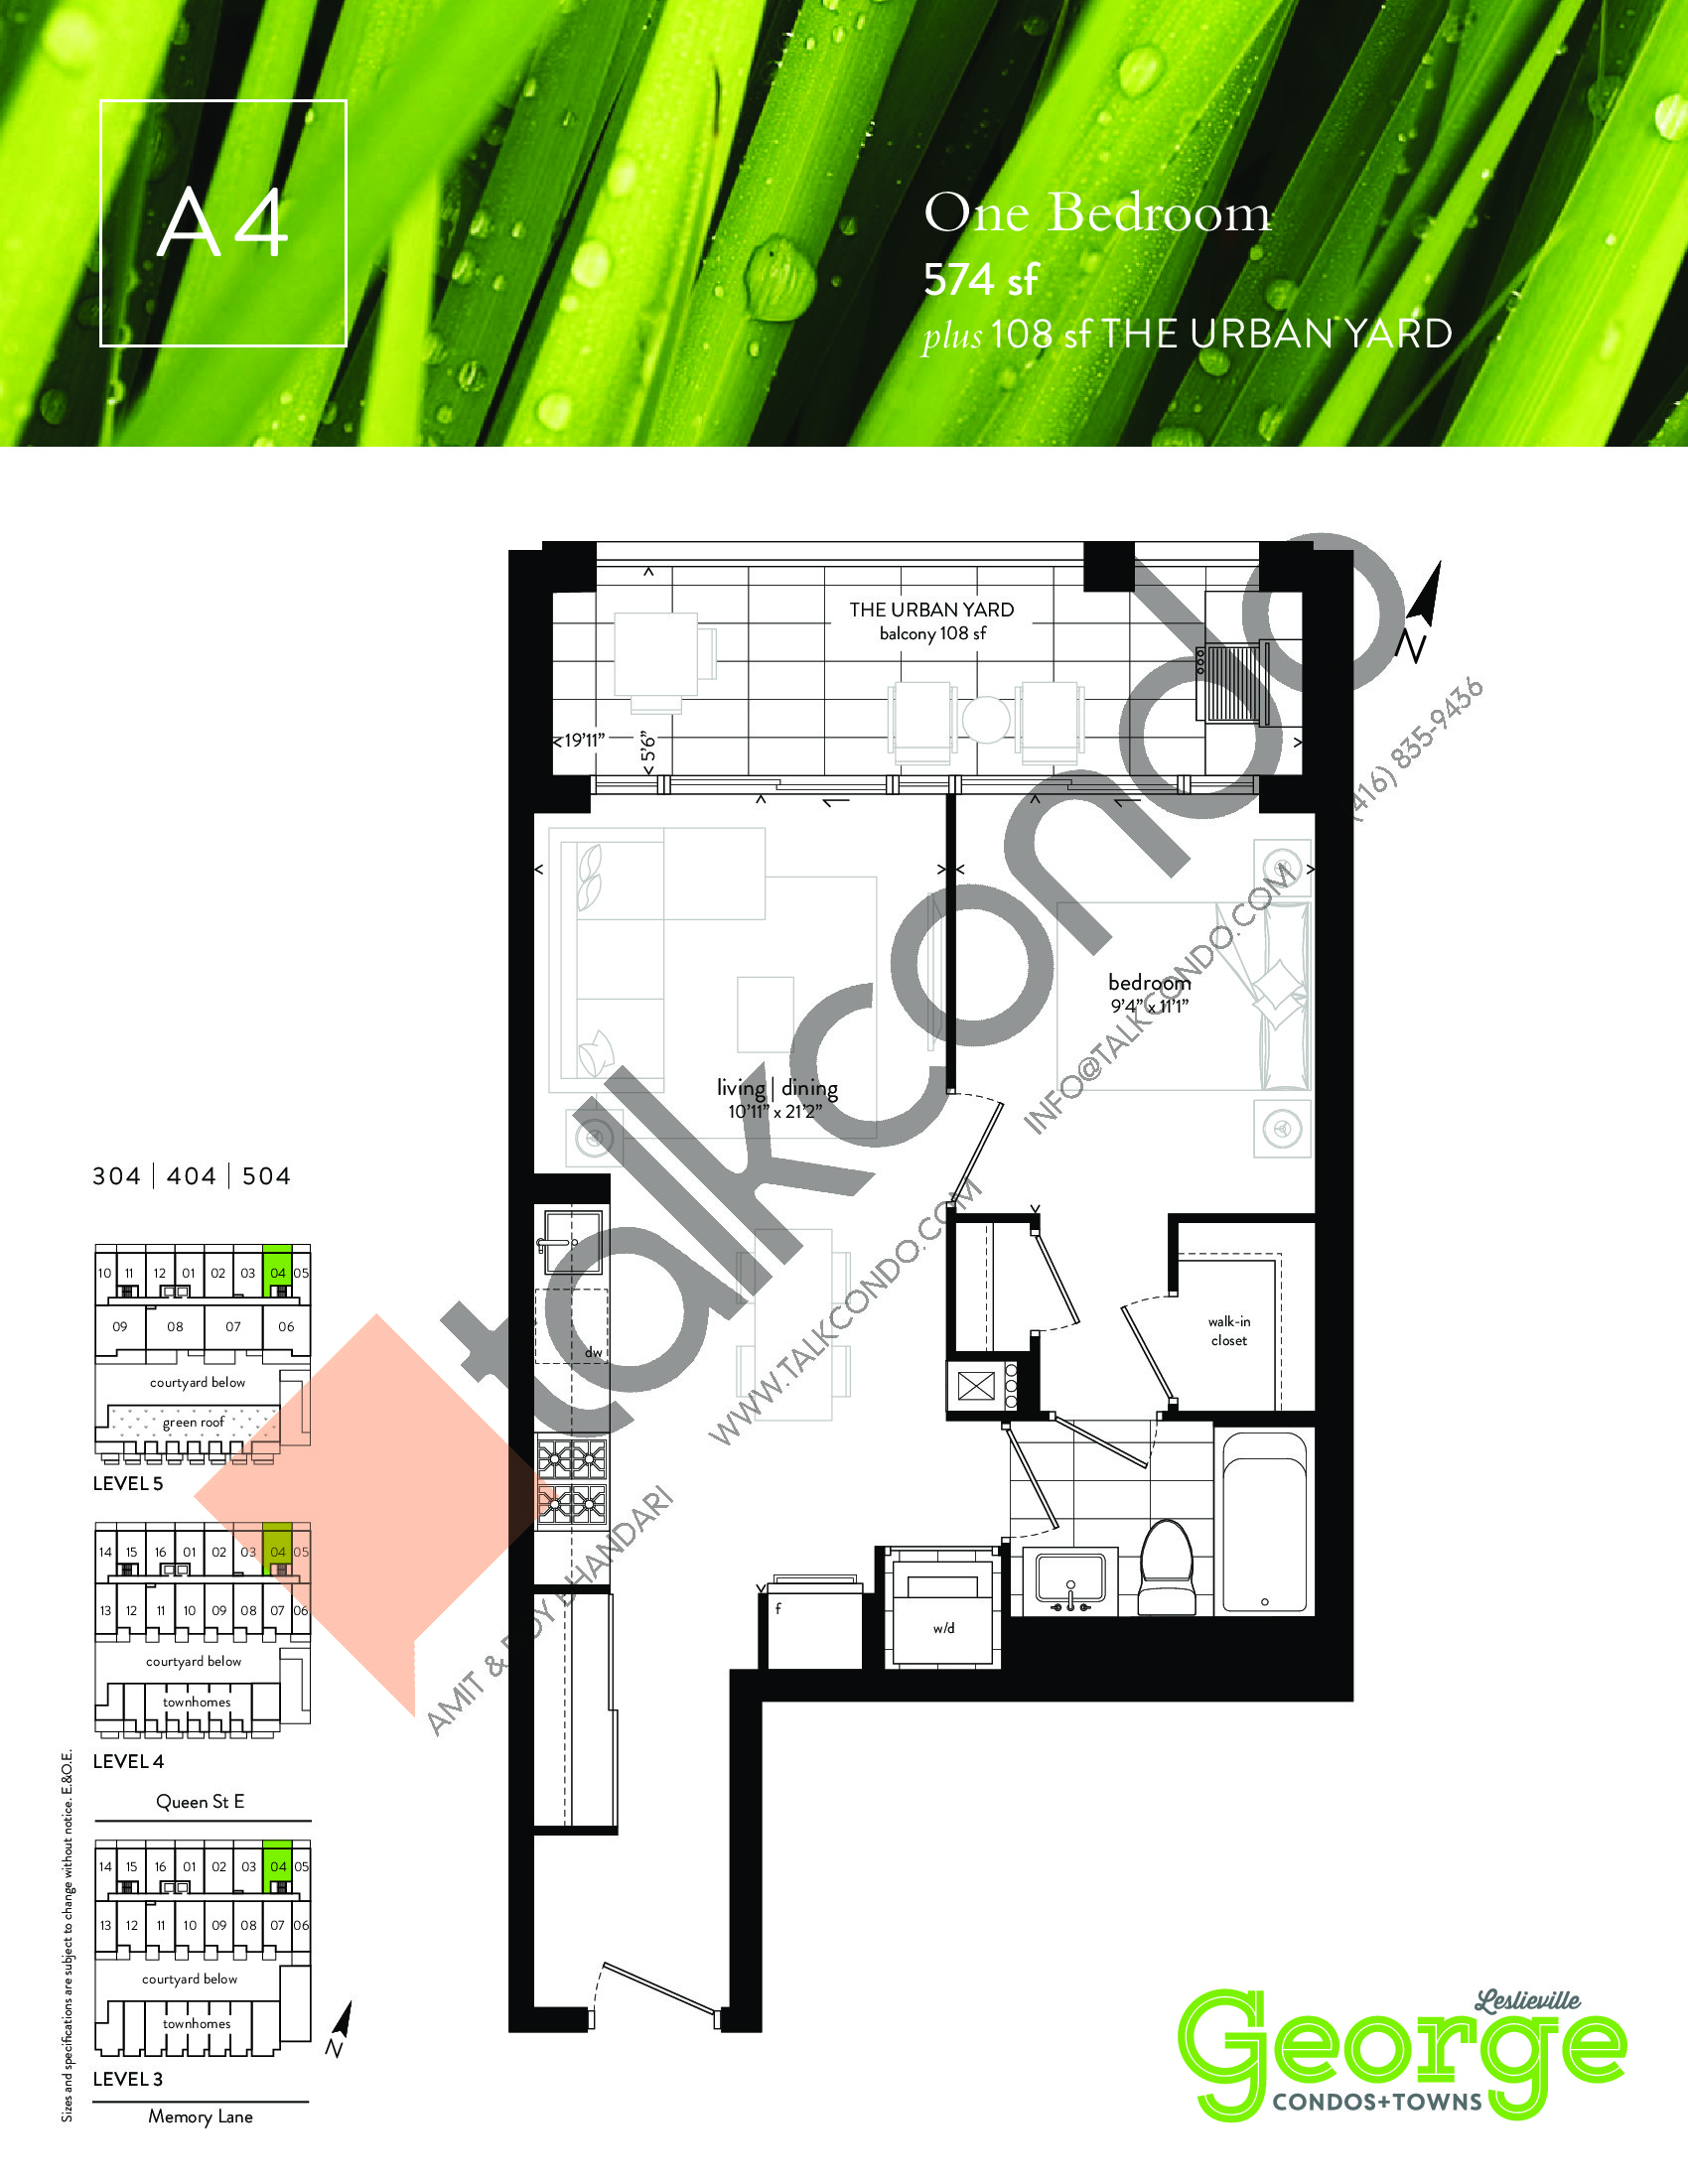 A4 Floor Plan at George Condos & Towns - 574 sq.ft